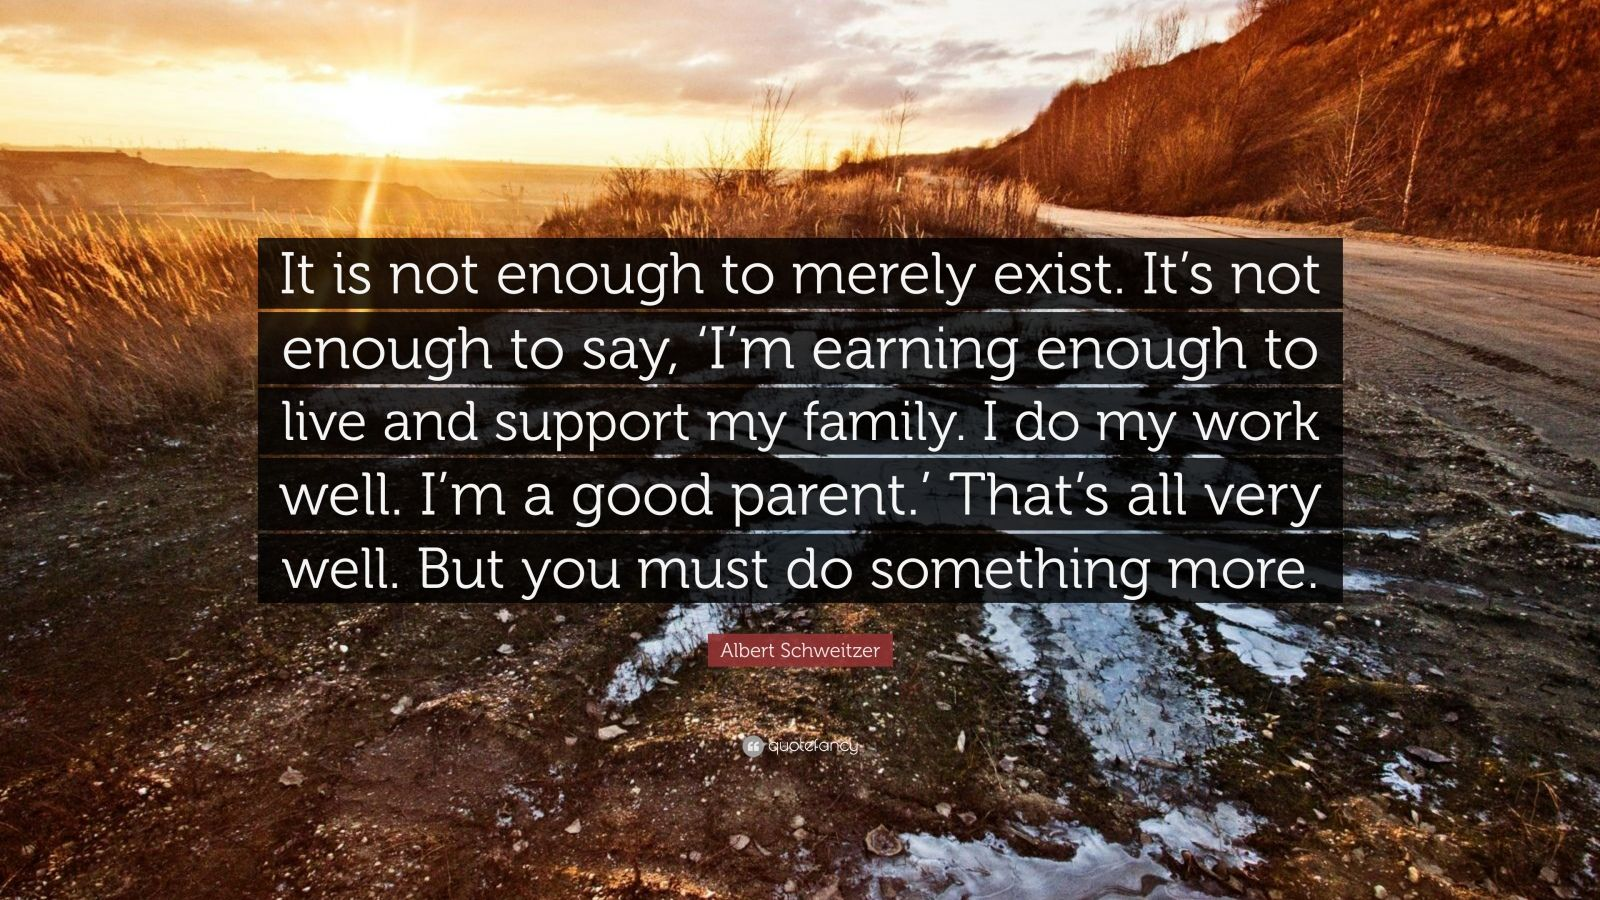 "Albert Schweitzer Quote: ""It is not enough to merely exist. It's not enough to say, 'I'm earning enough to live and support my family. I do my work well. I'm a good parent.' That's all very well. But you must do something more."""